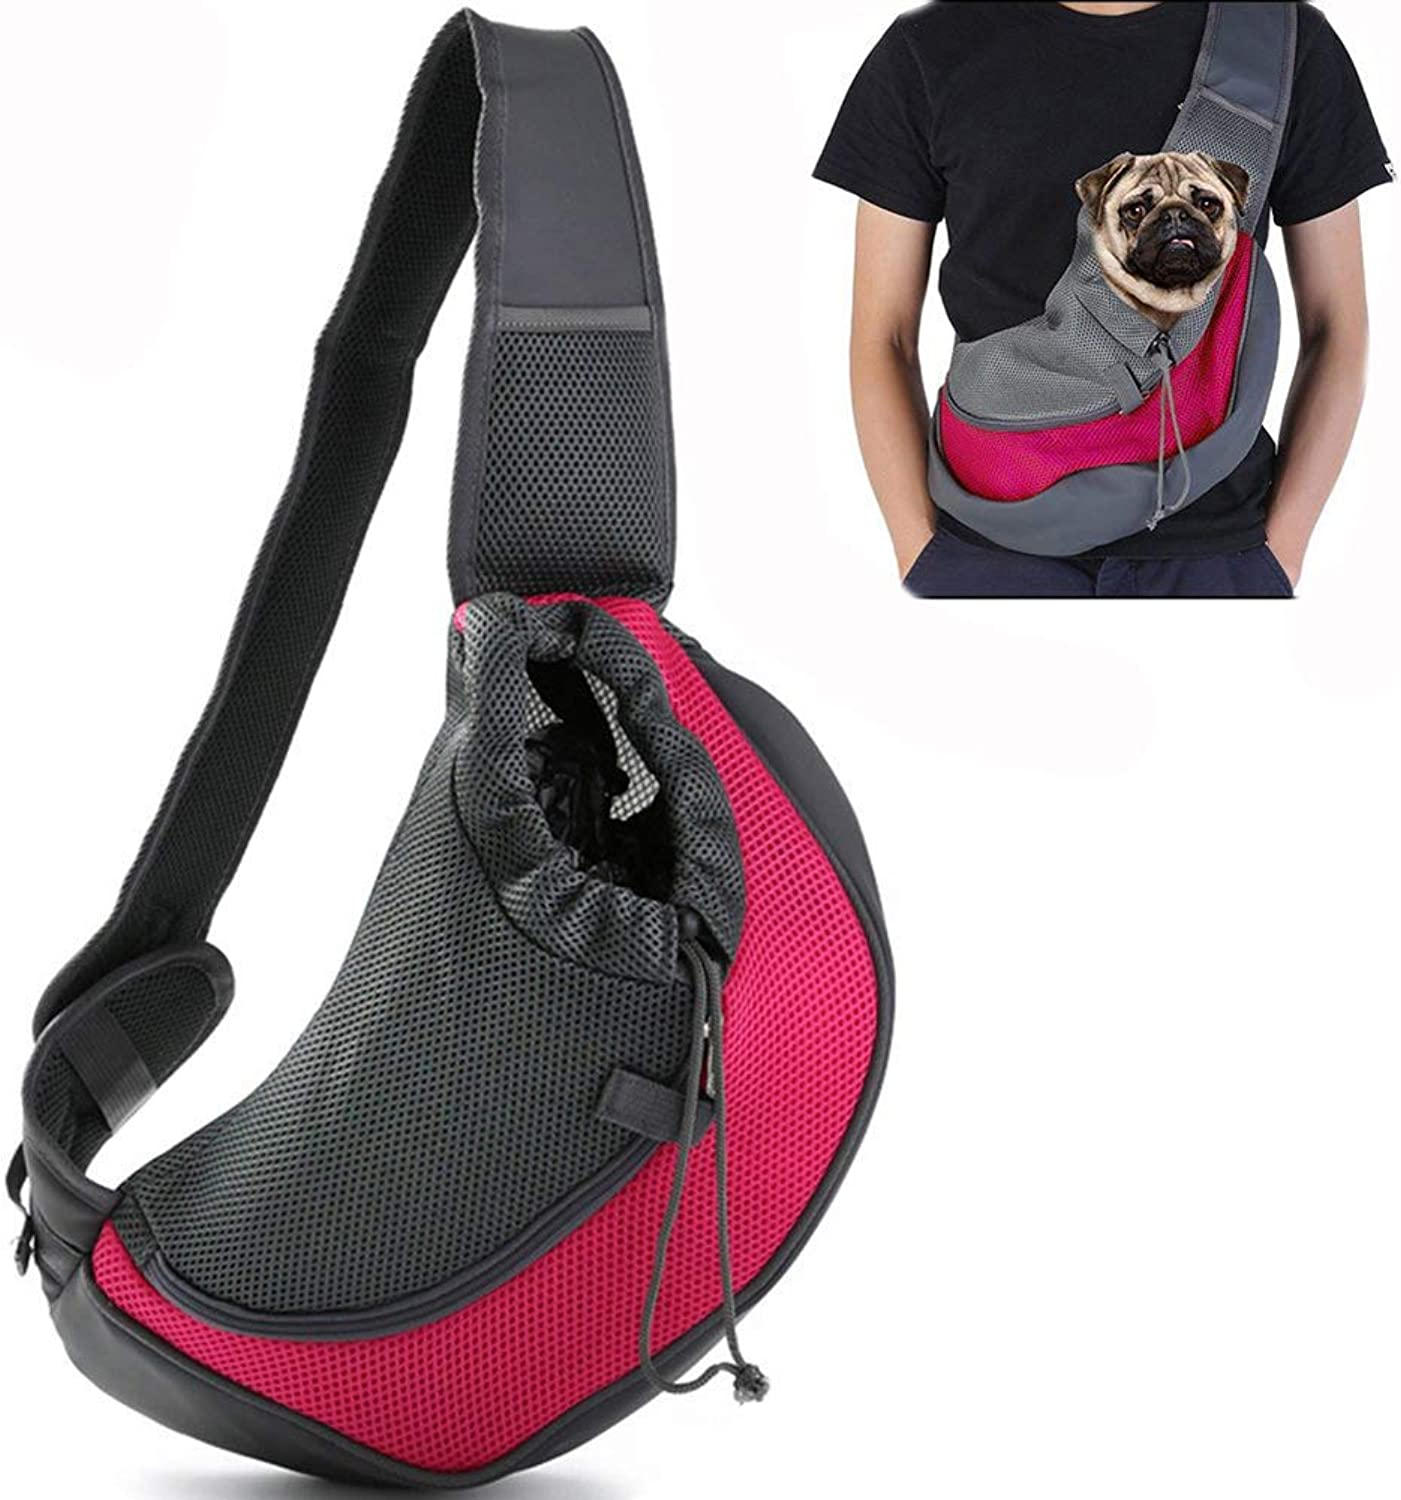 Pet Dog Sling Carrier Shoulder Bags,Outdoor Reversible Pouch Mesh Shoulder Carry Bag Tote Handbag Carrier,with Adjustable Strap & Zipper for Dogs and Cats,C,L